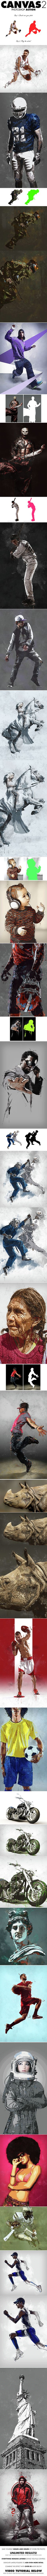 Canvas 2 Photoshop Action. Download here: https://graphicriver.net/item/canvas-2-photoshop-action/14937645?ref=Handiesgn